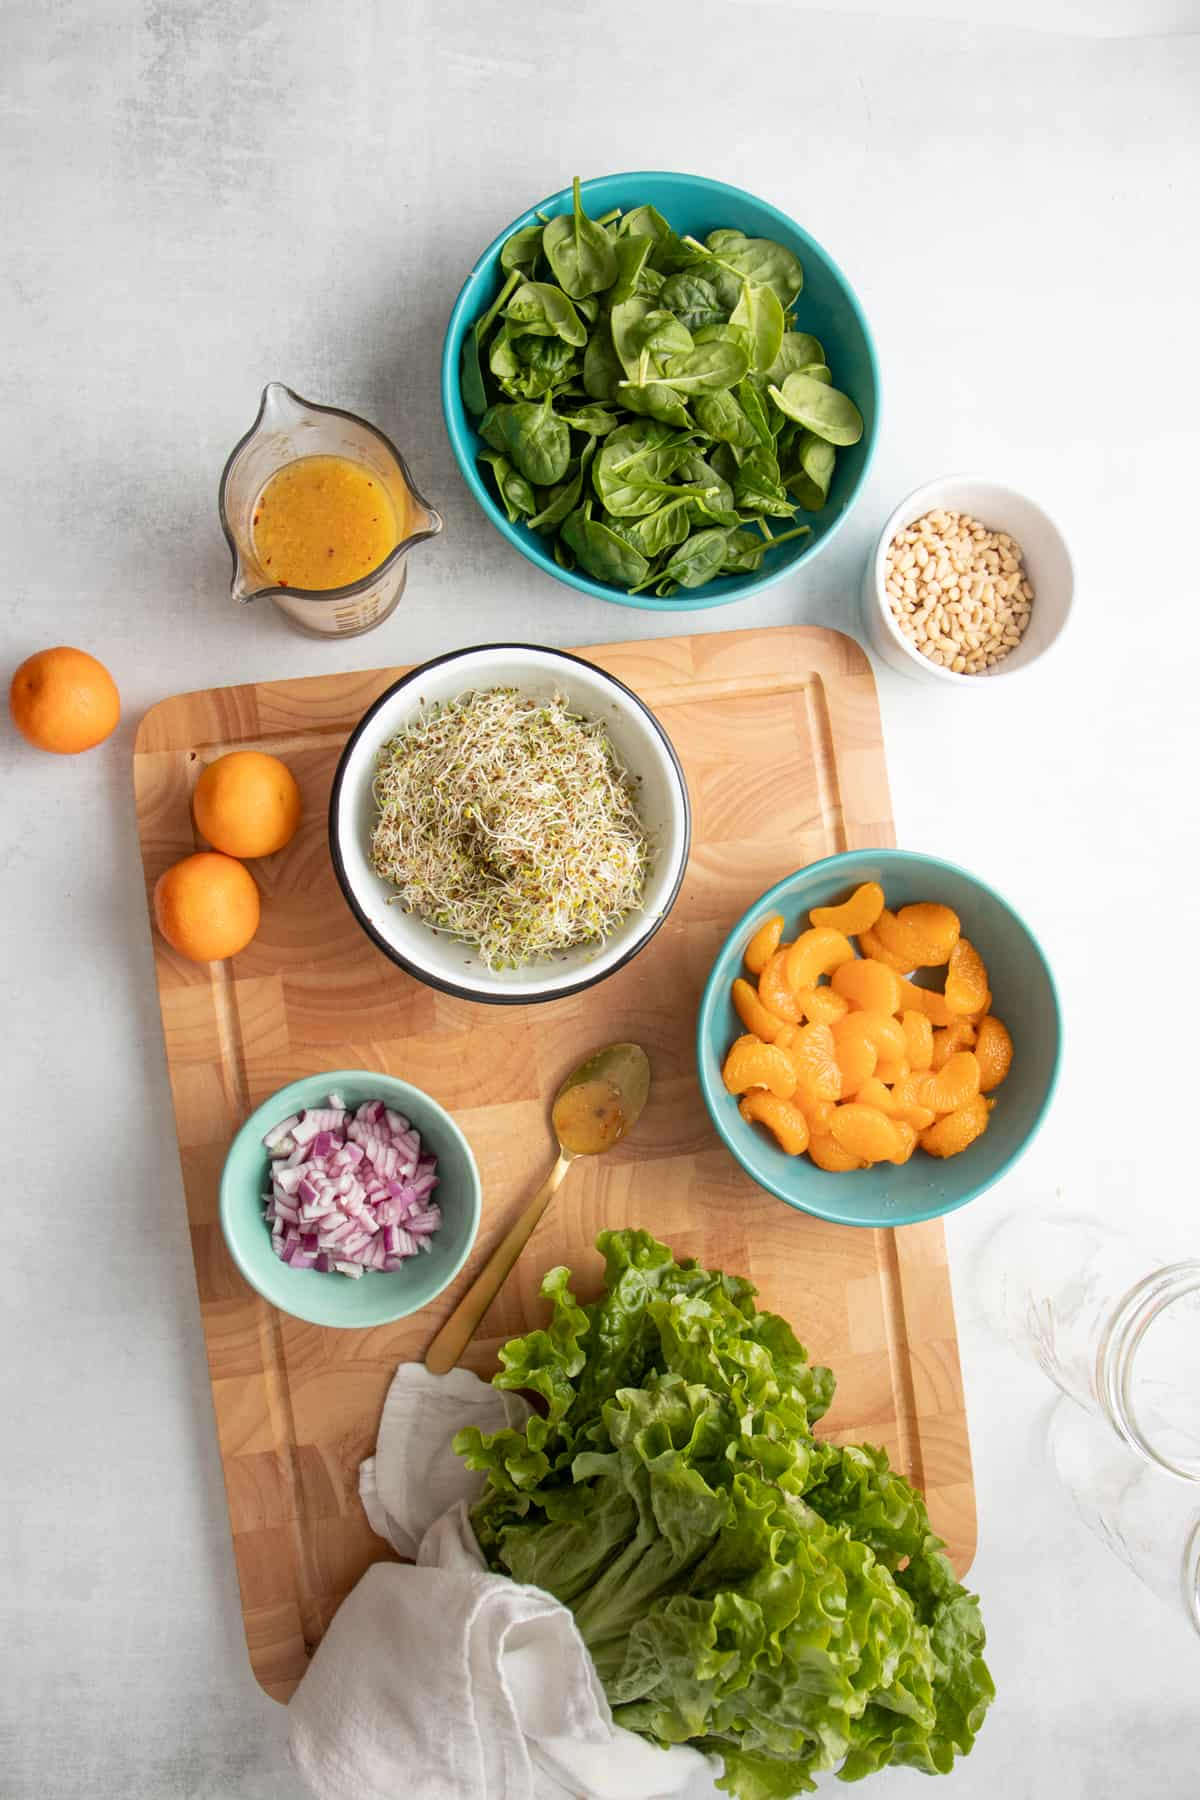 Ingredients for a sunshine mandarin salad in individual bowls.